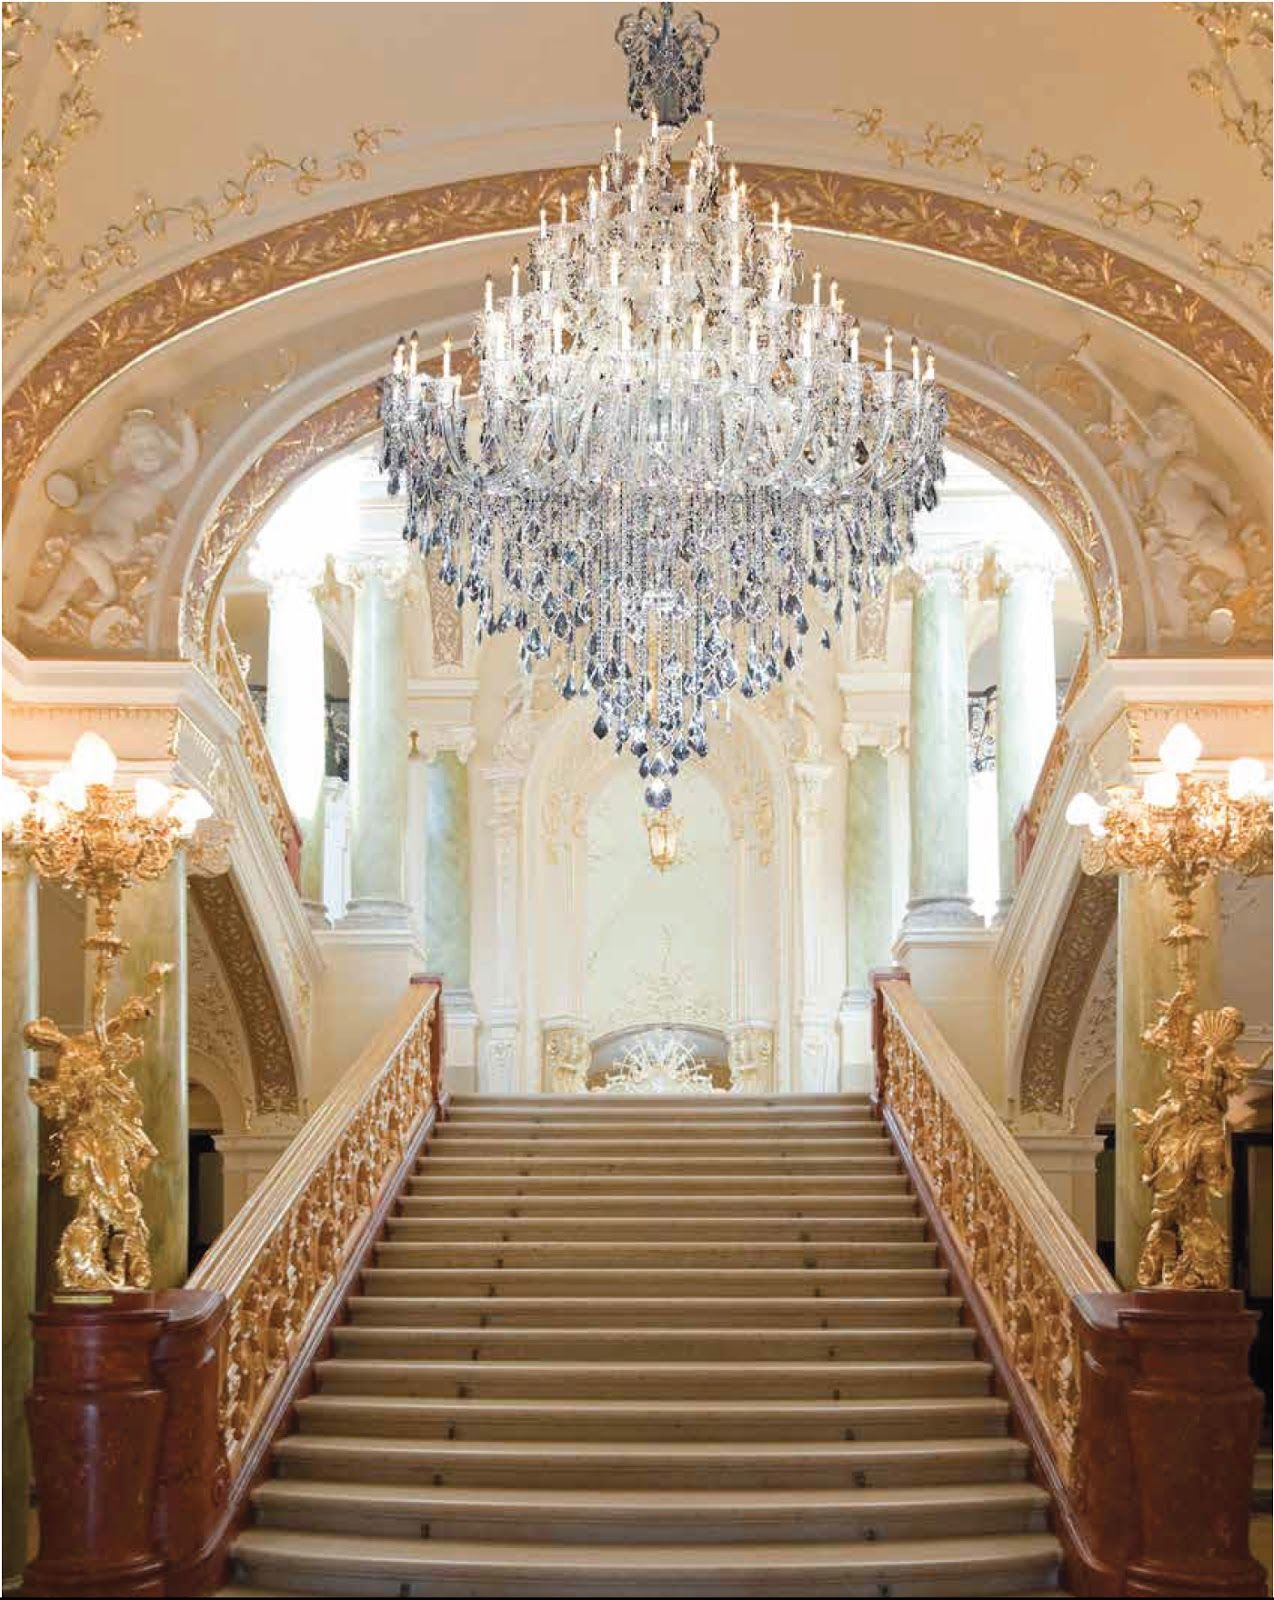 Crystal foyer chandeliers beautiful foyer chandeliers for a grand crystal foyer chandeliers beautiful foyer chandeliers for a grand staircase chandelier lightingdesign aloadofball Image collections